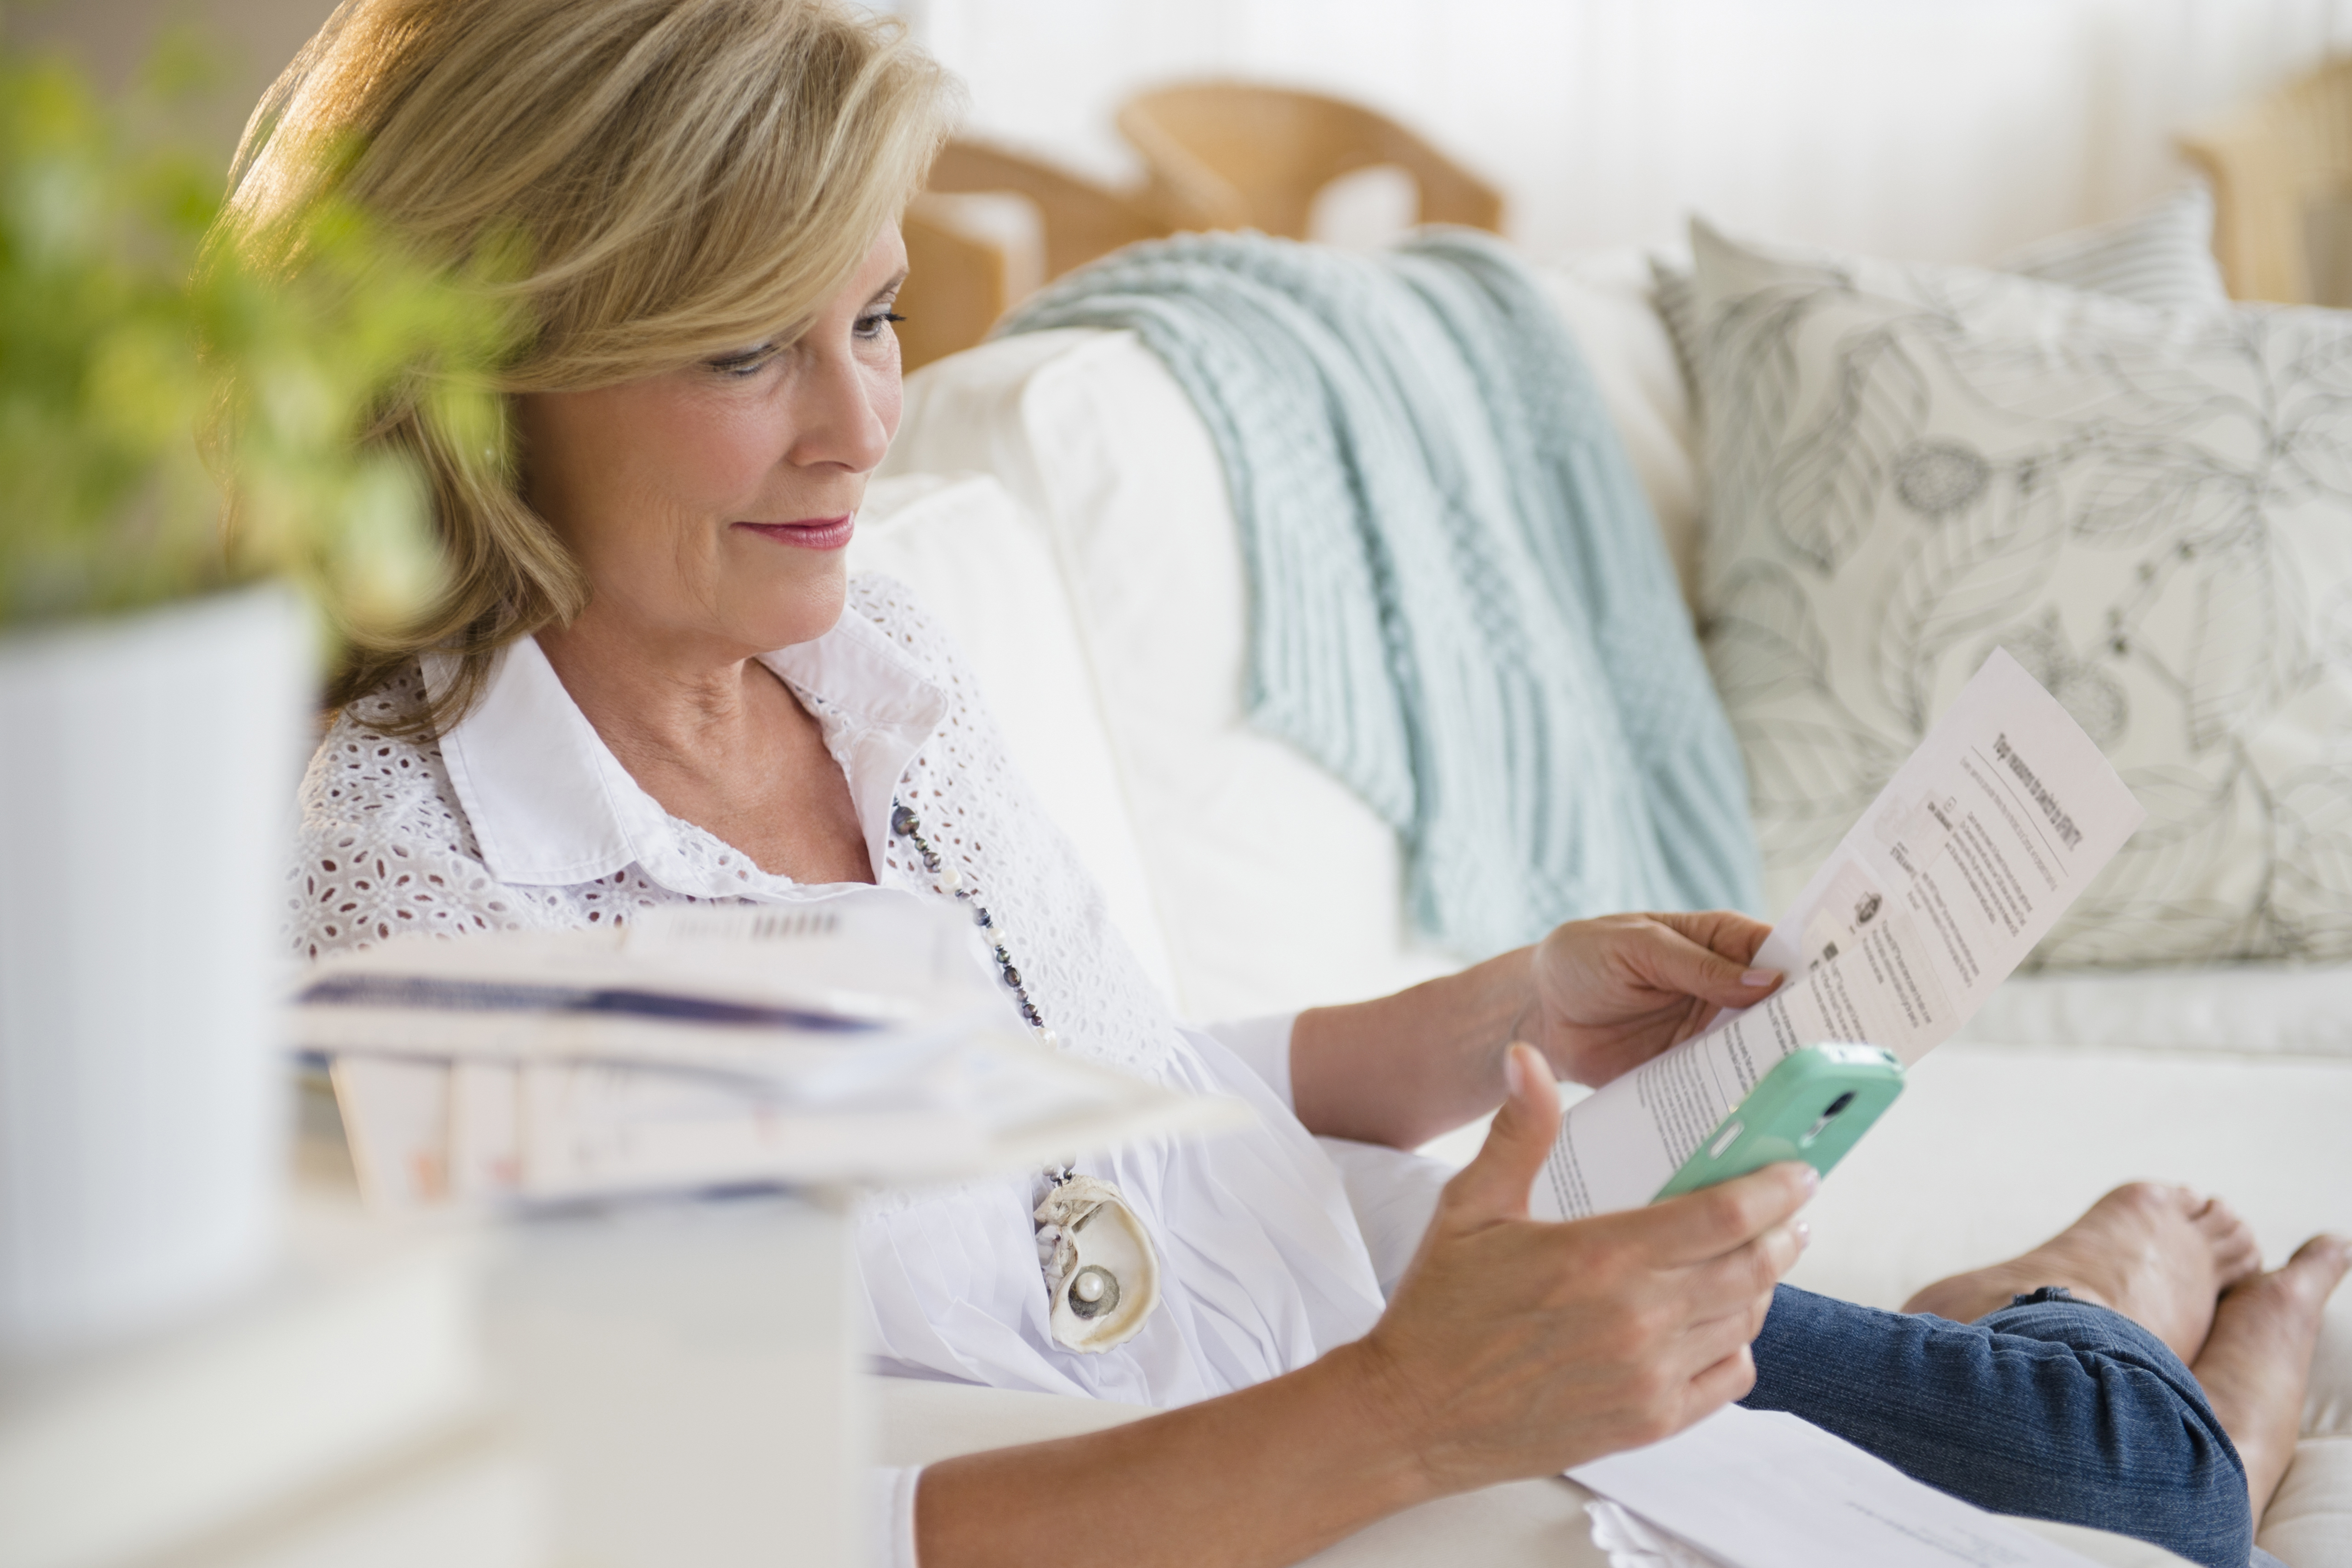 6 Ways to Lower Your Medical Bills